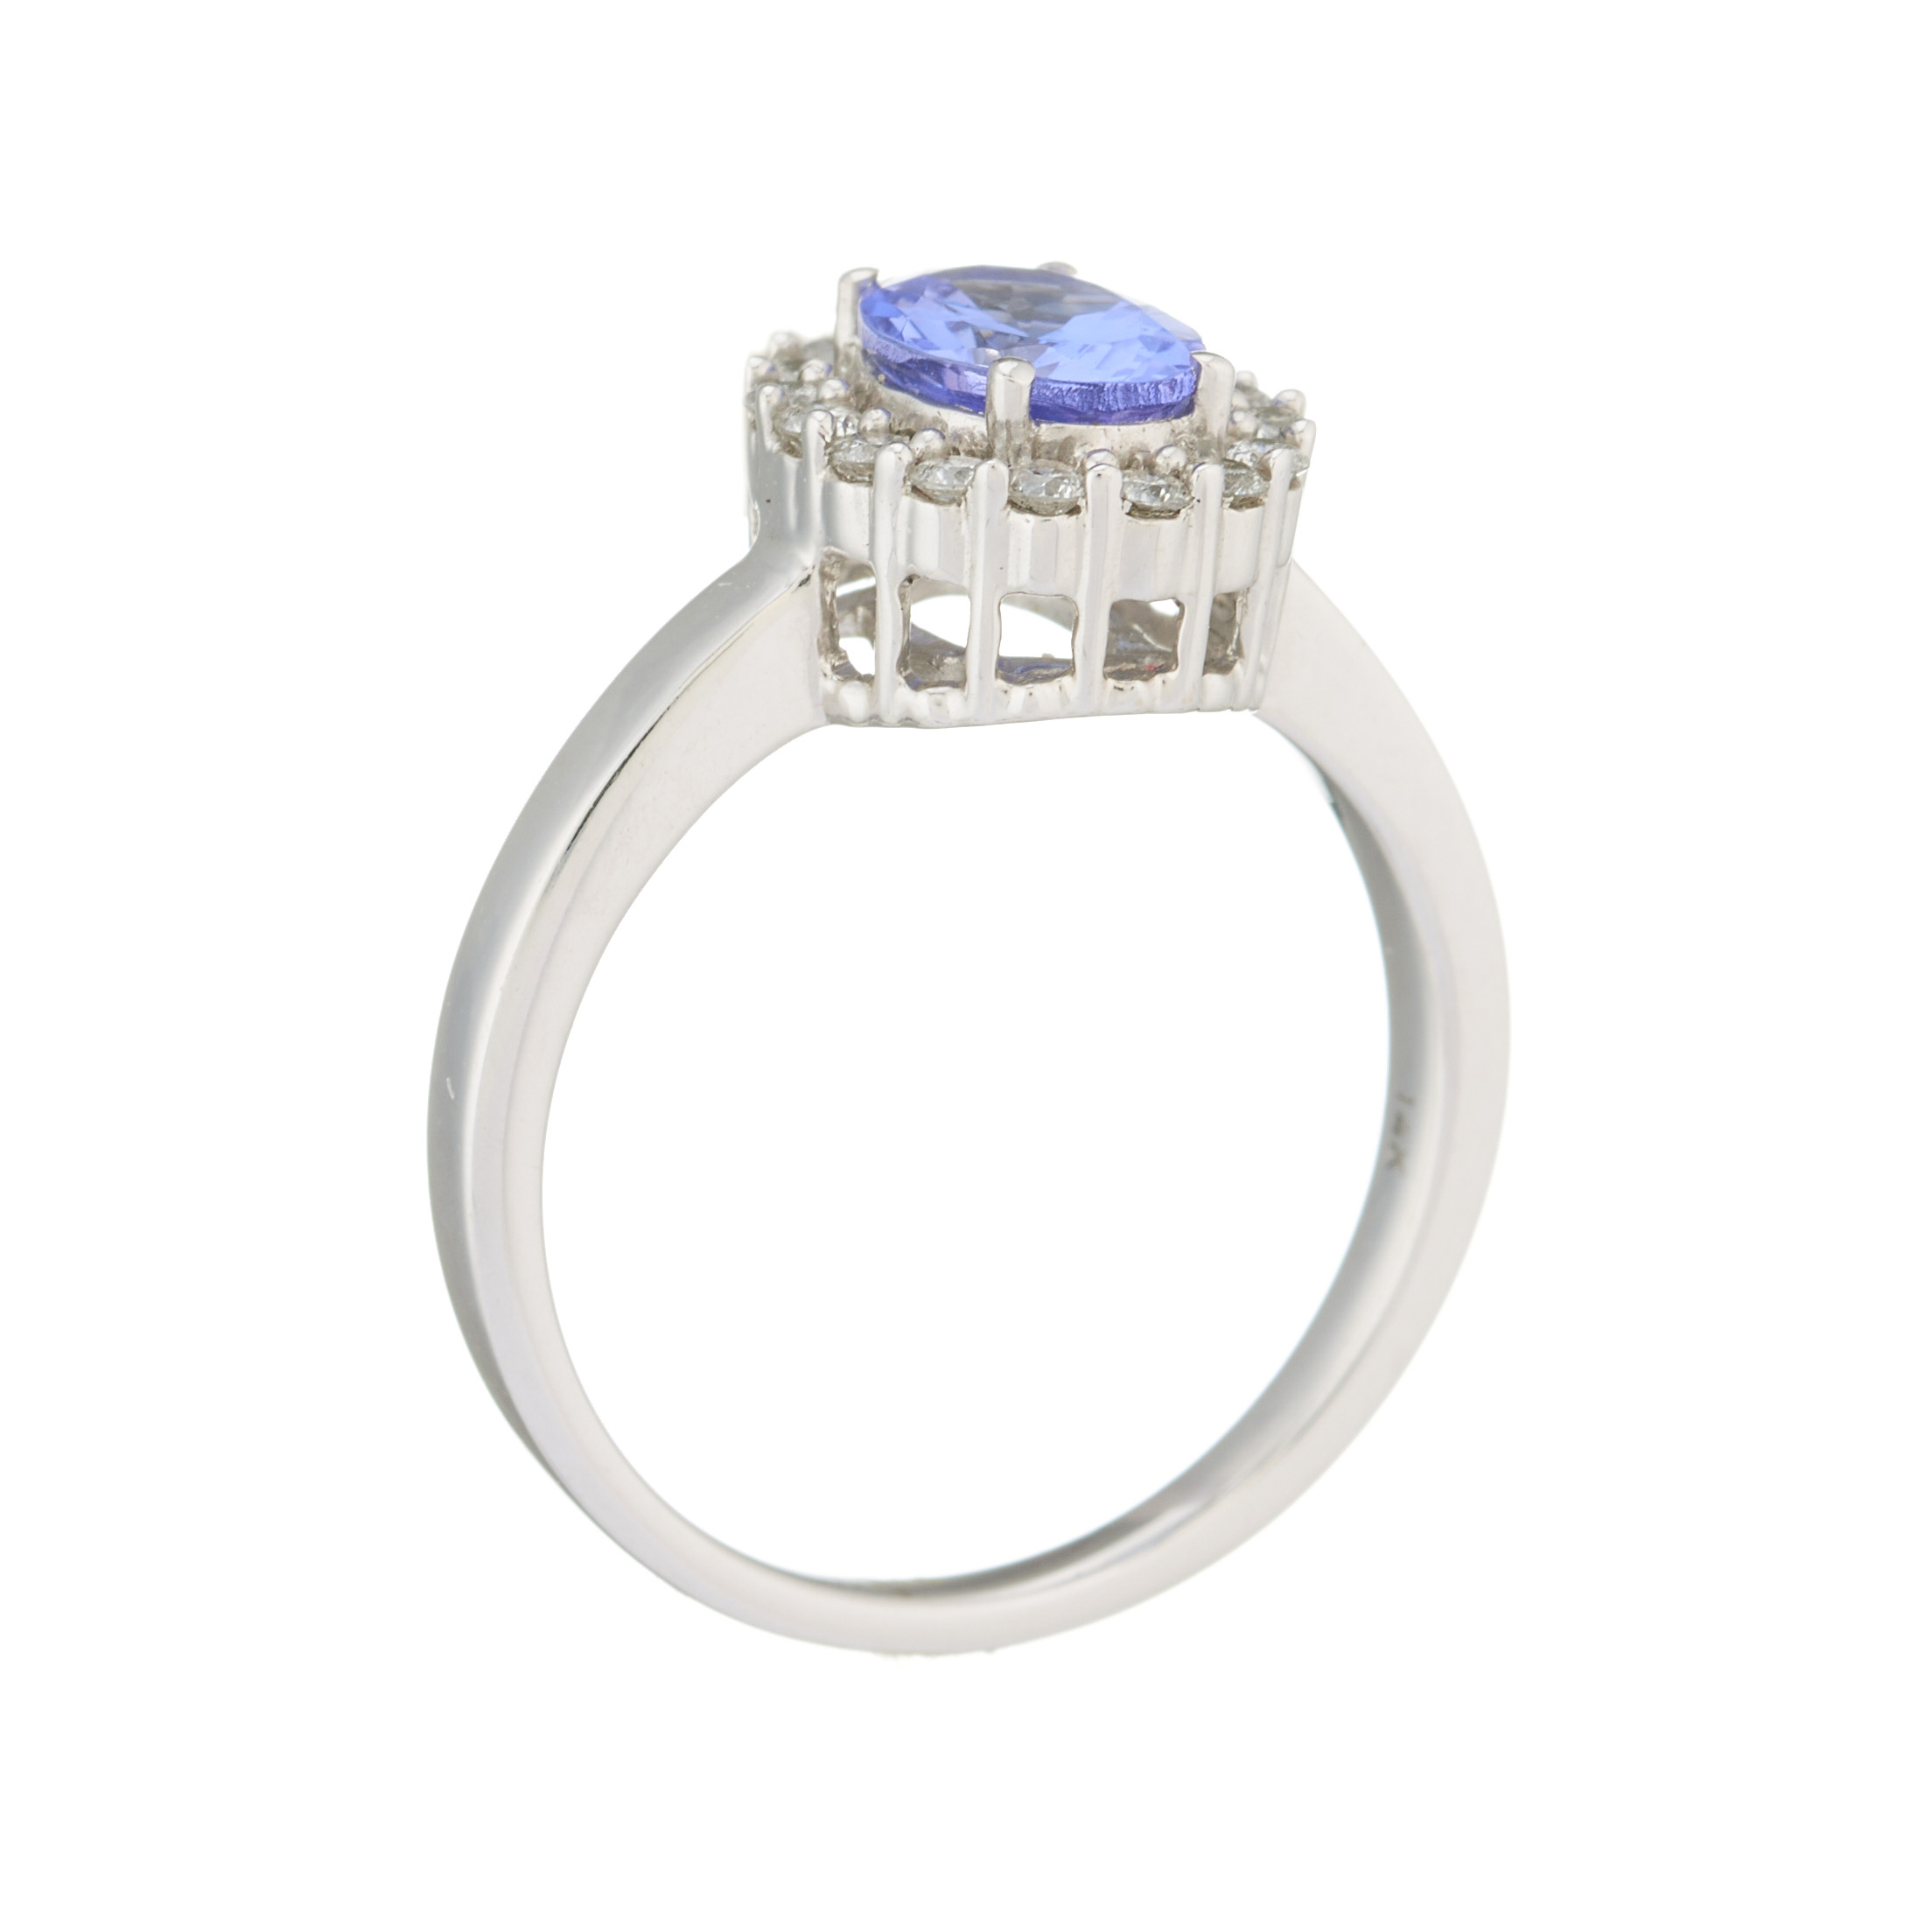 A 14ct gold tanzanite and brilliant-cut diamond cluster ring - Image 2 of 2